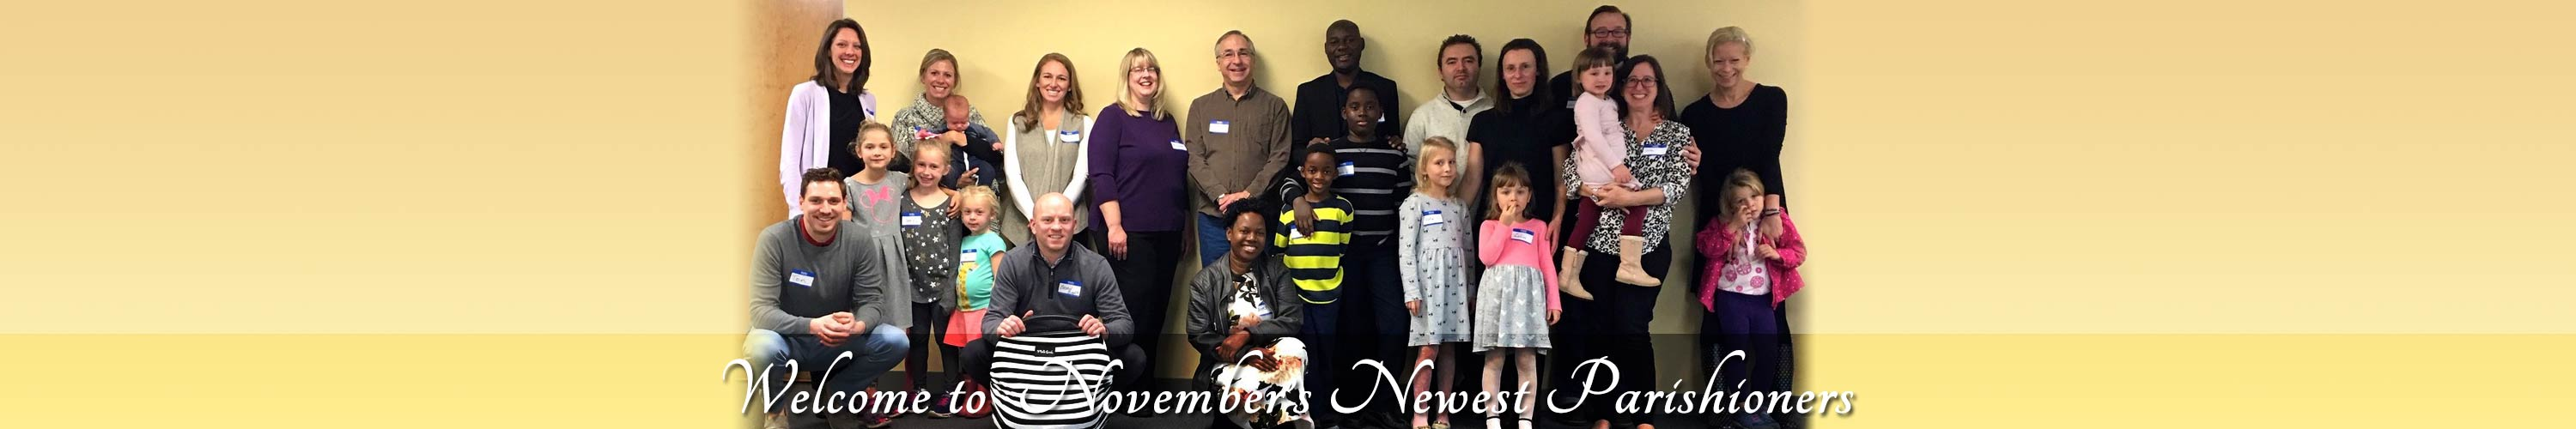 Welcome-New-Parishioners-Nov-18